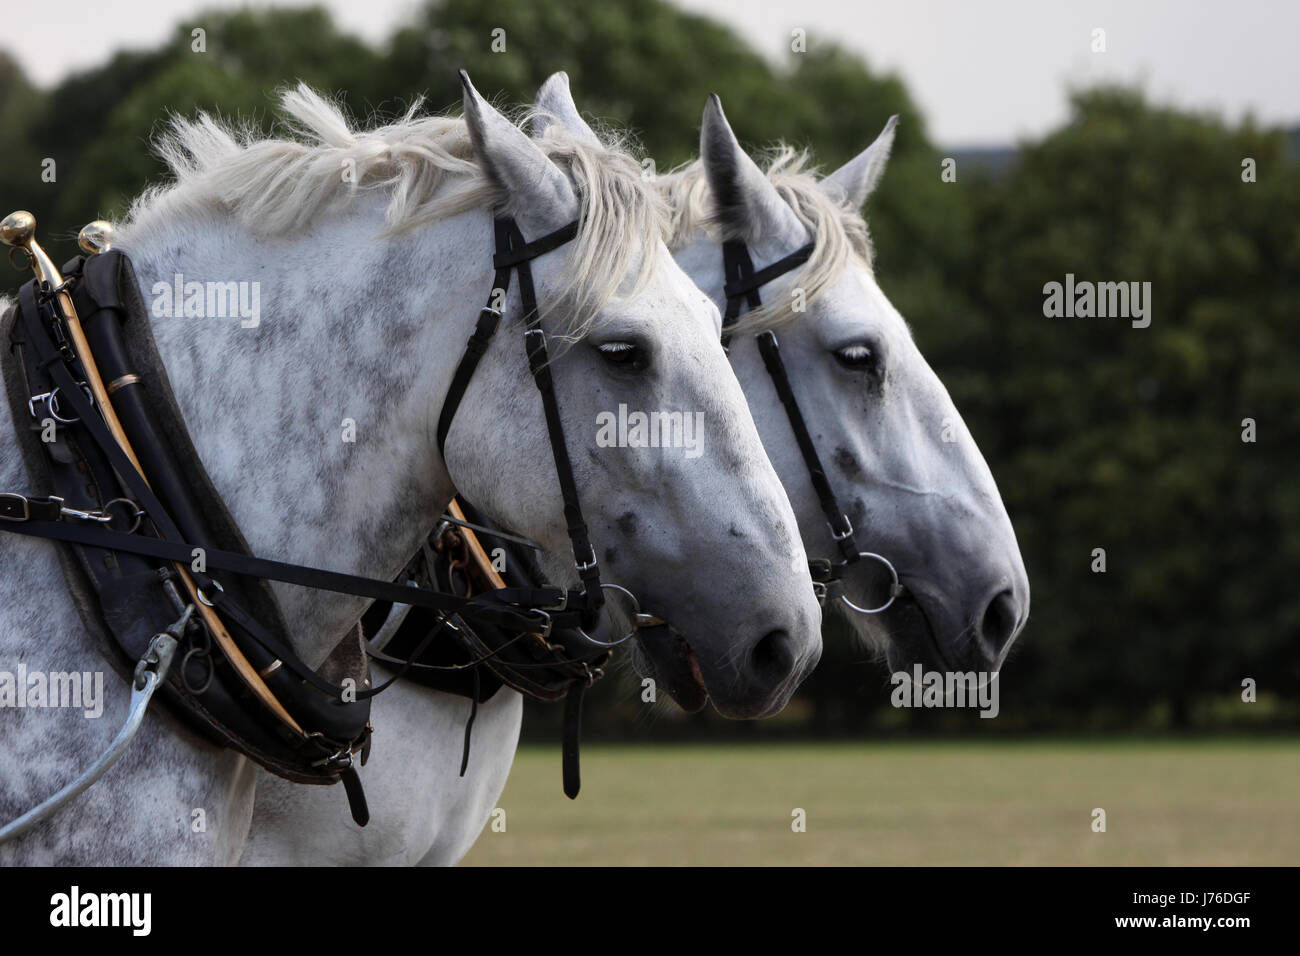 harness cold blooded animal carriage and pair horse animal strong agriculture - Stock Image